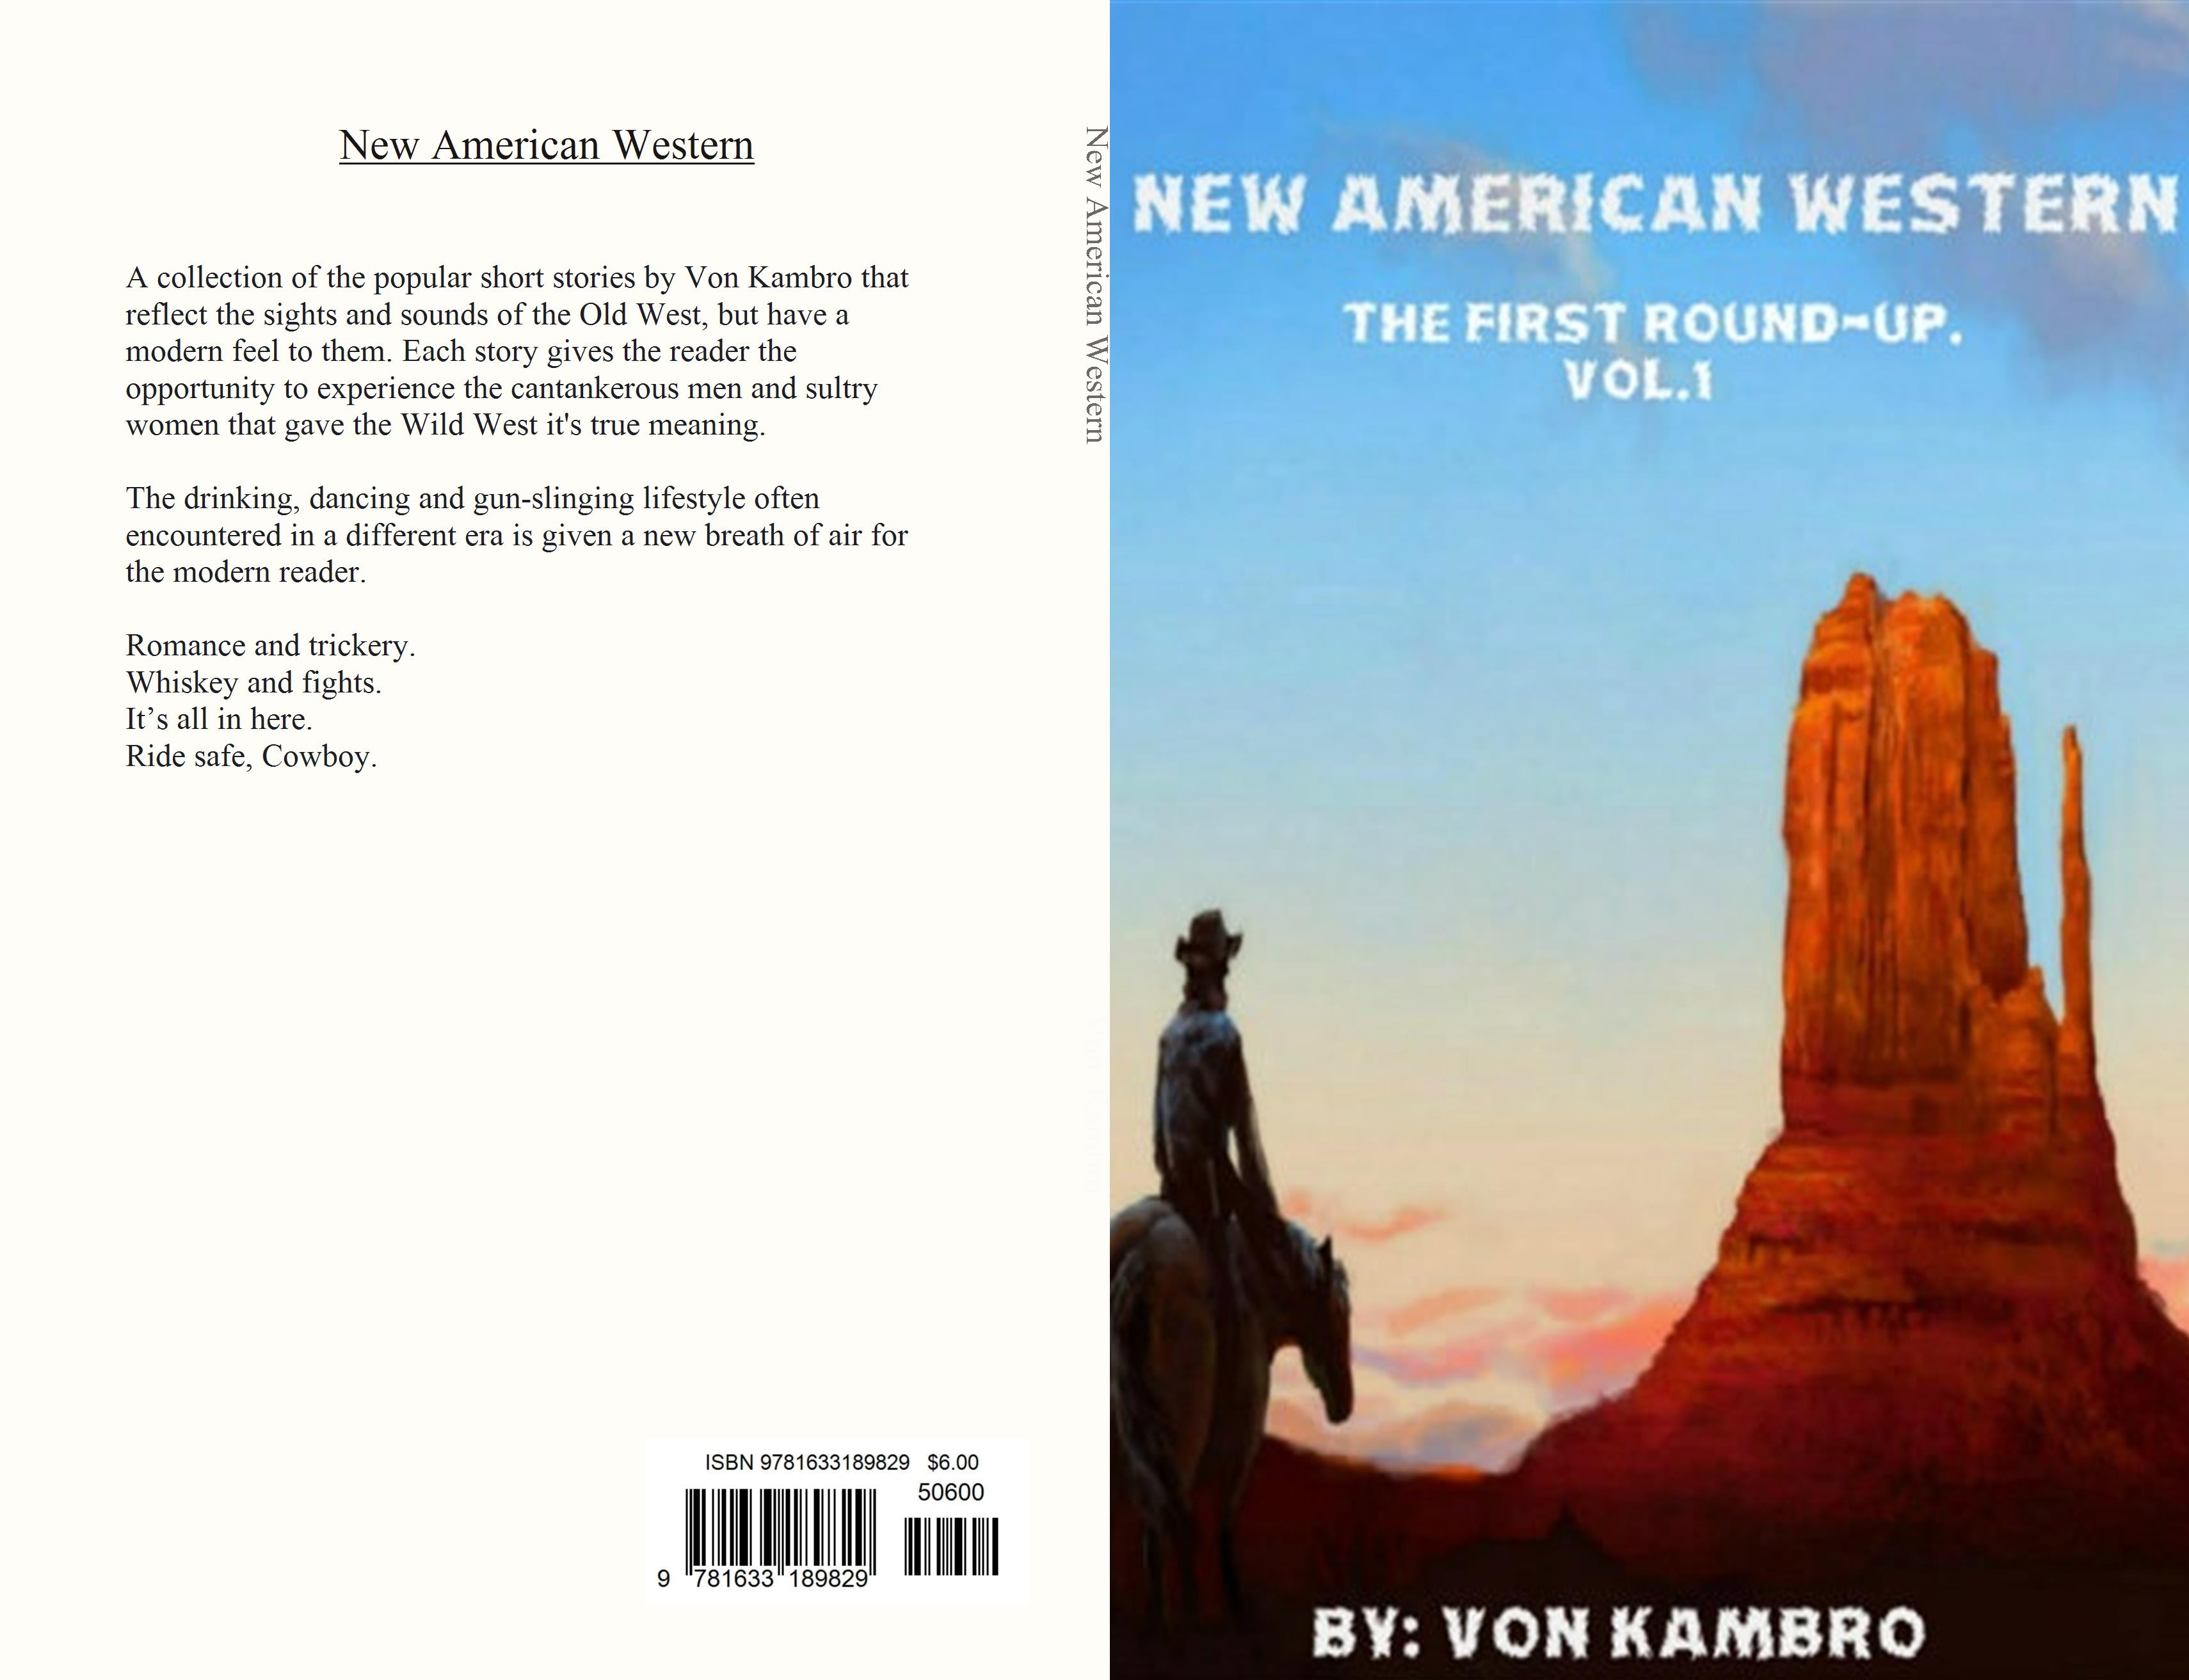 New American Western: The Complete Collection cover image